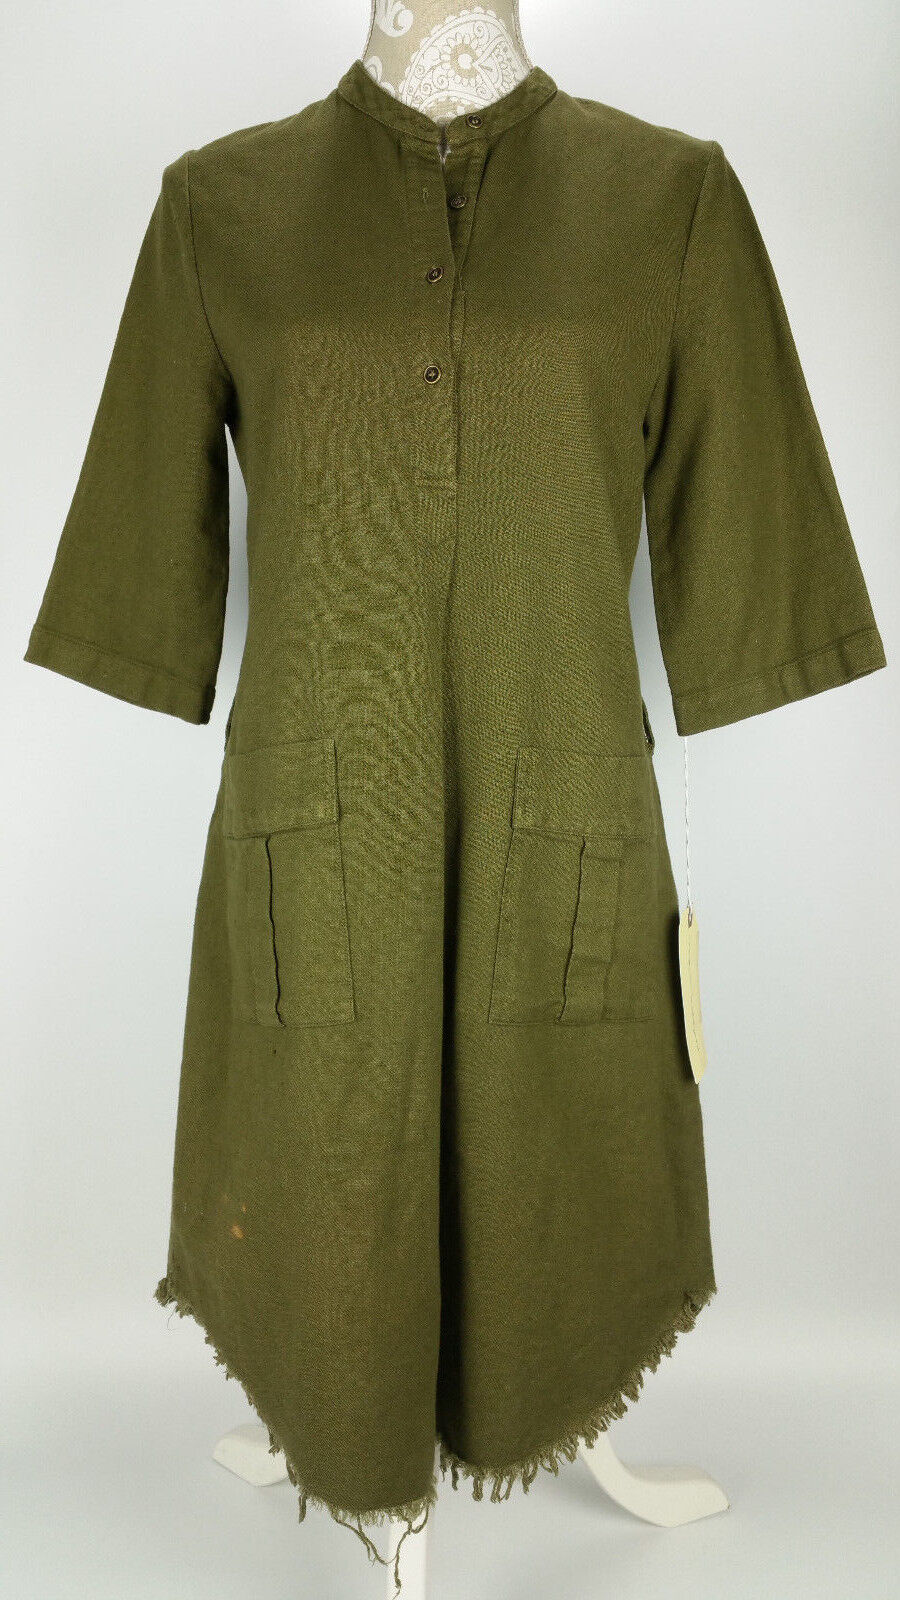 NEW Raquel Allegra Henley Cargo Dress sz 2 Medium Cotton Army Grün Safari FLAW